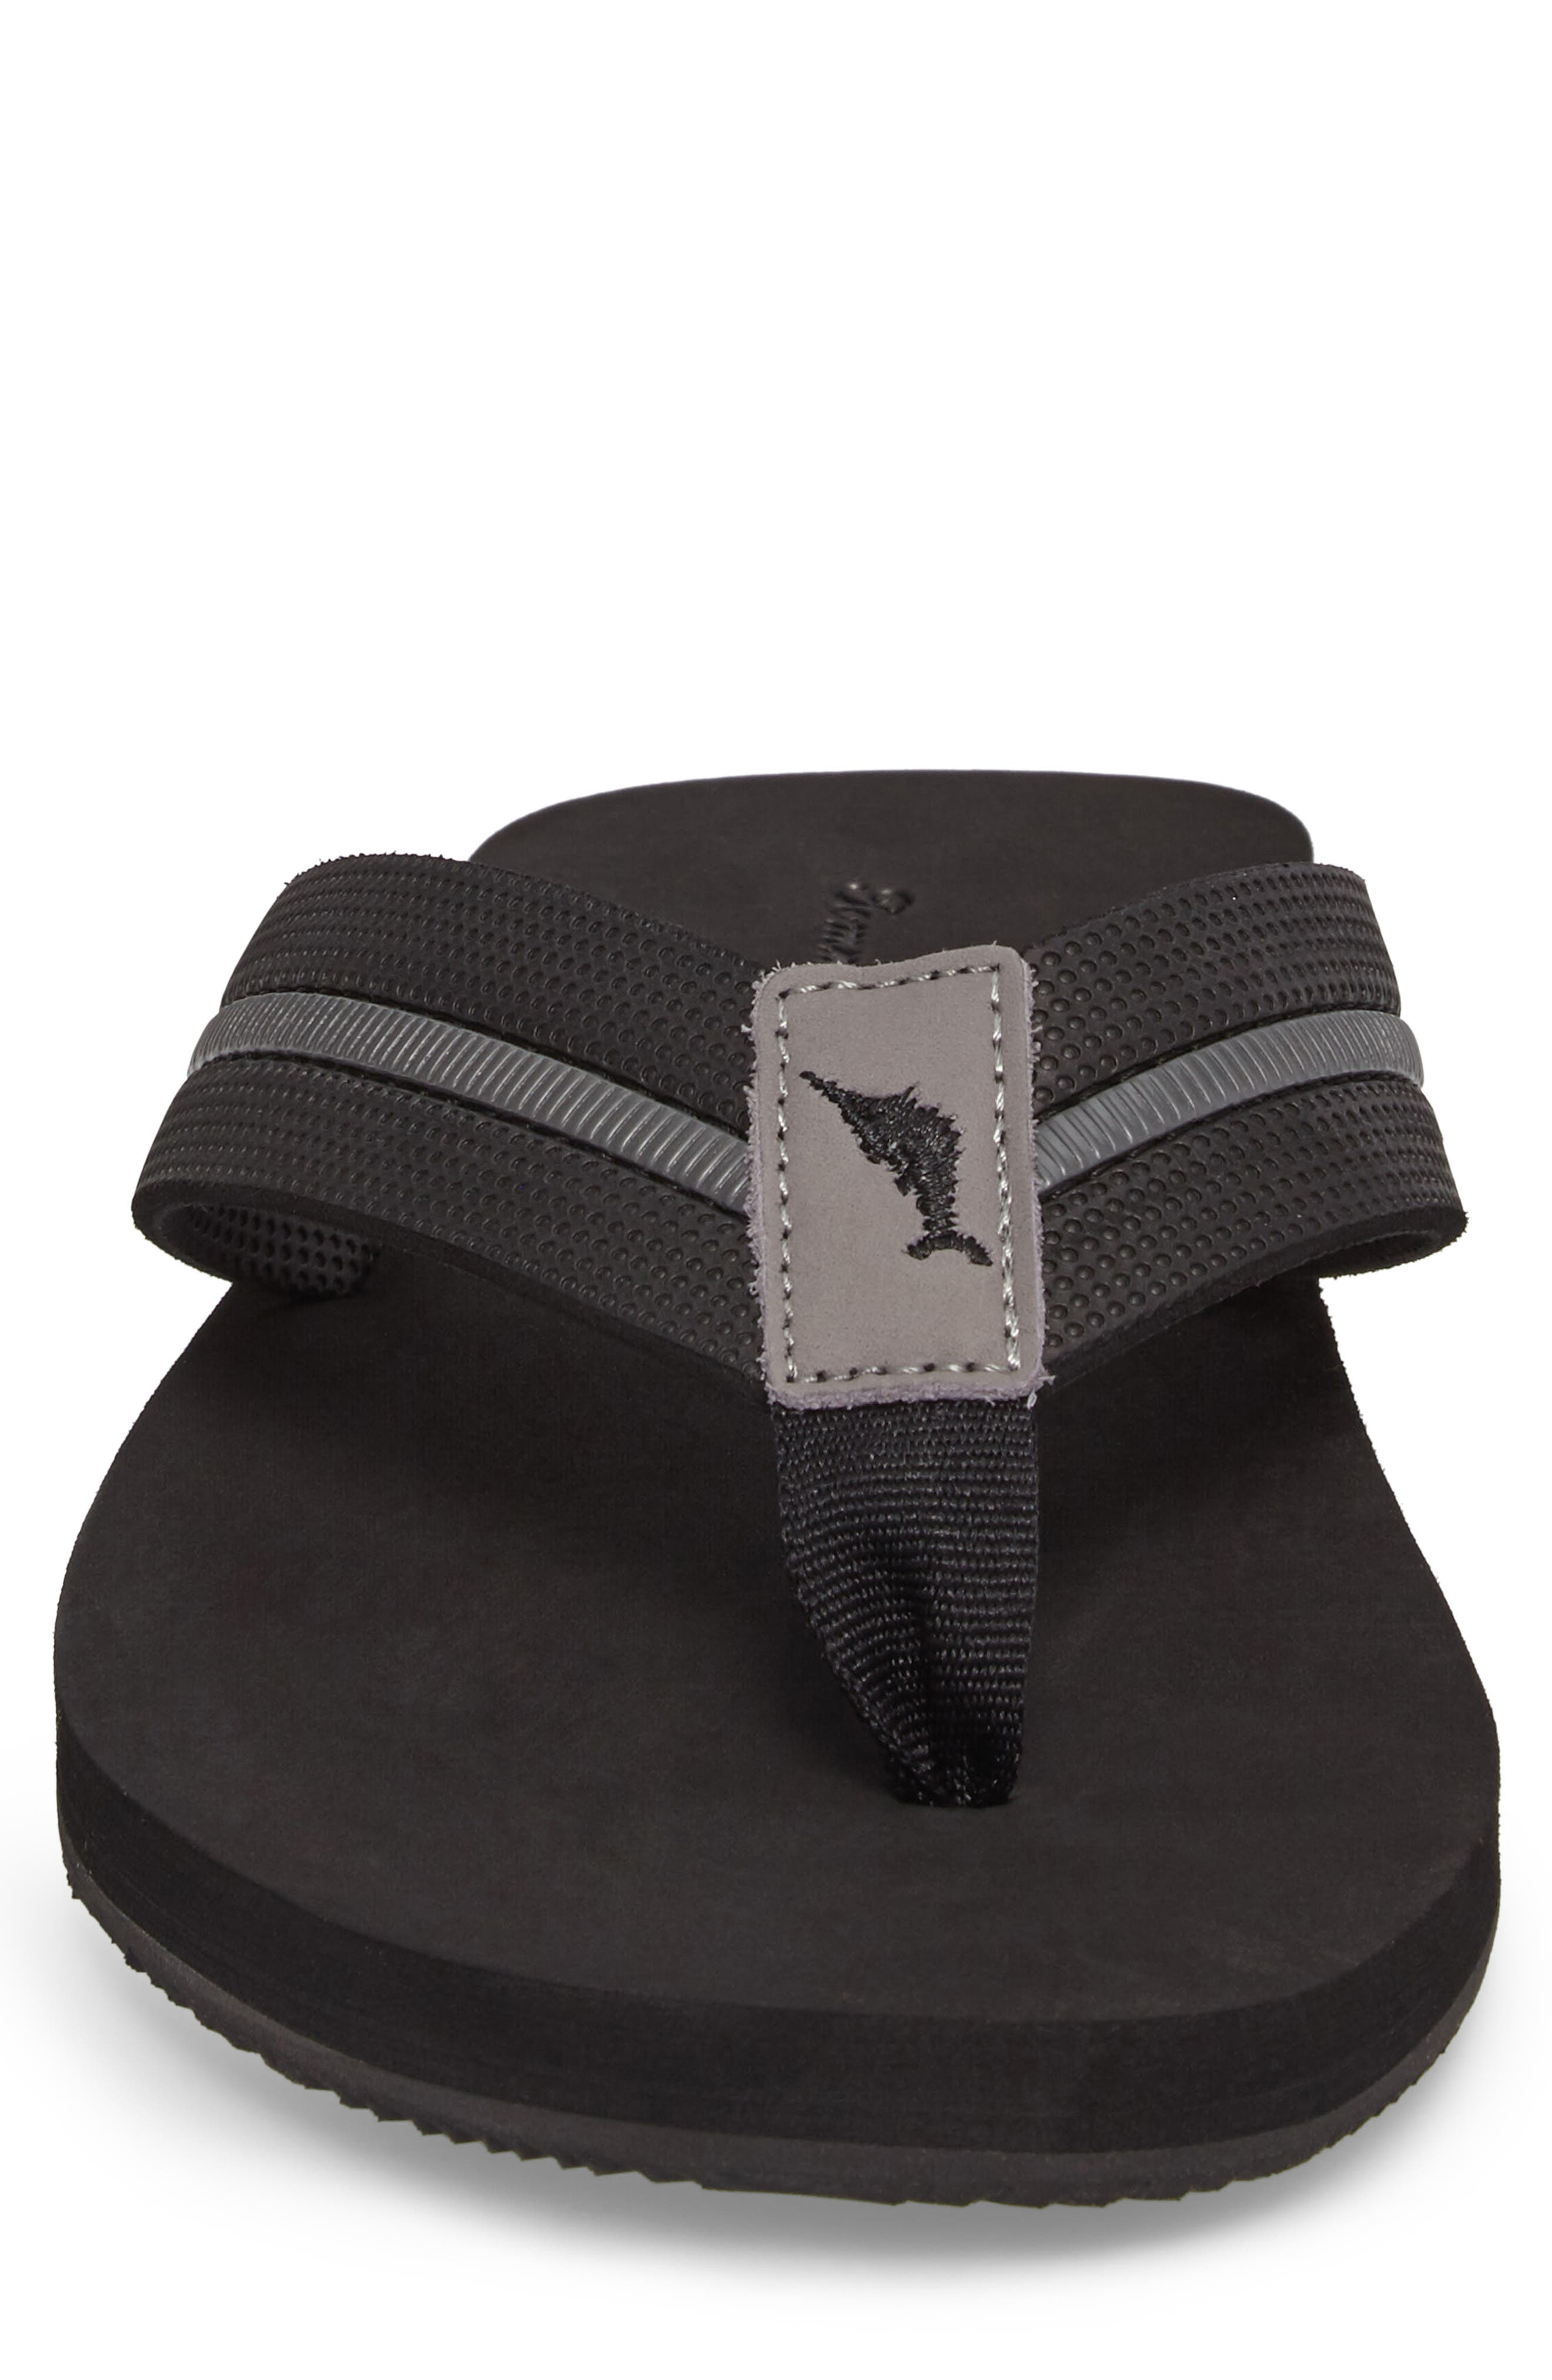 Taheeti Flip Flop,                             Alternate thumbnail 4, color,                             BLACK